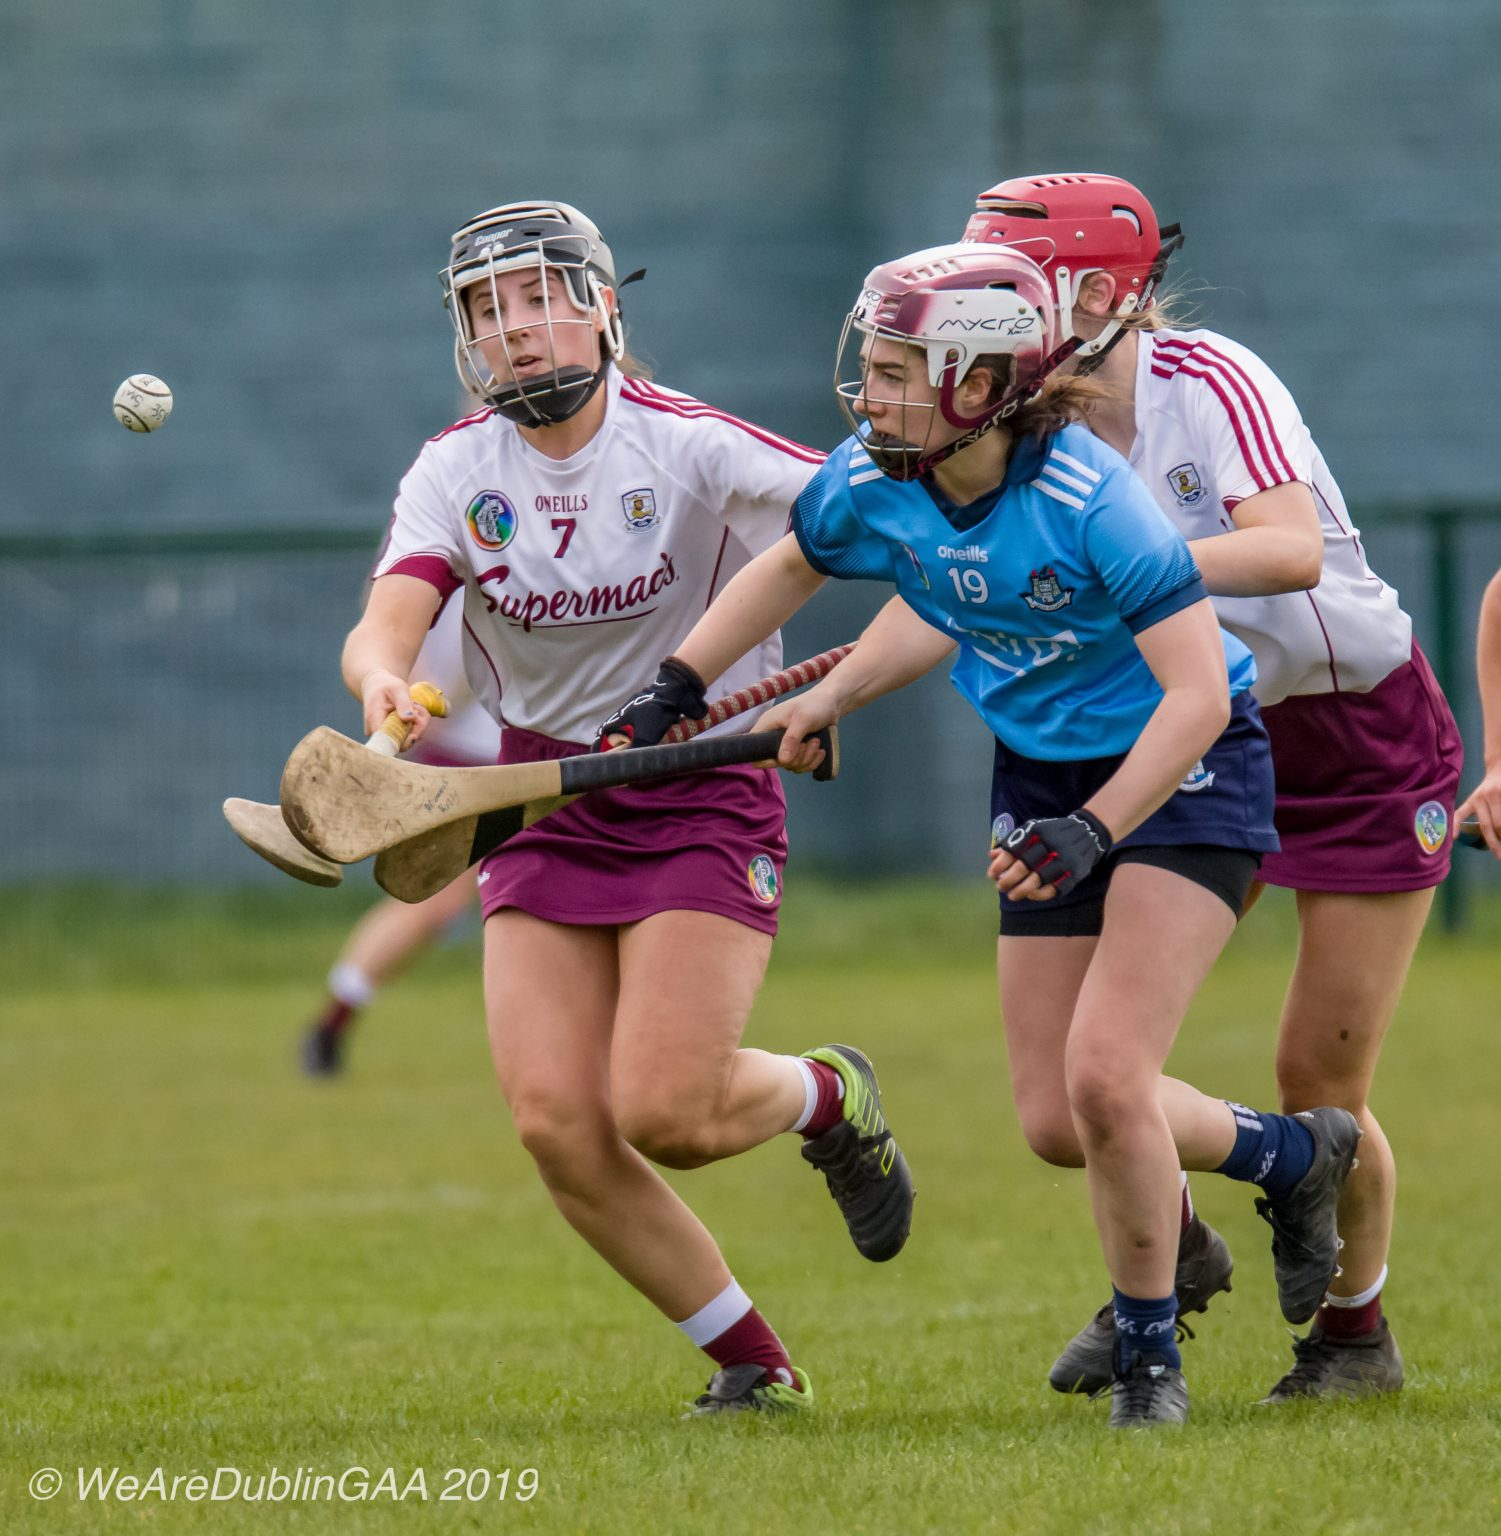 Dublin Minor Camogie player in a sky blue jersey, navy Skort and maroon and white helmet battles for the ball with two Galway Minors In white jerseys and maroon skorts